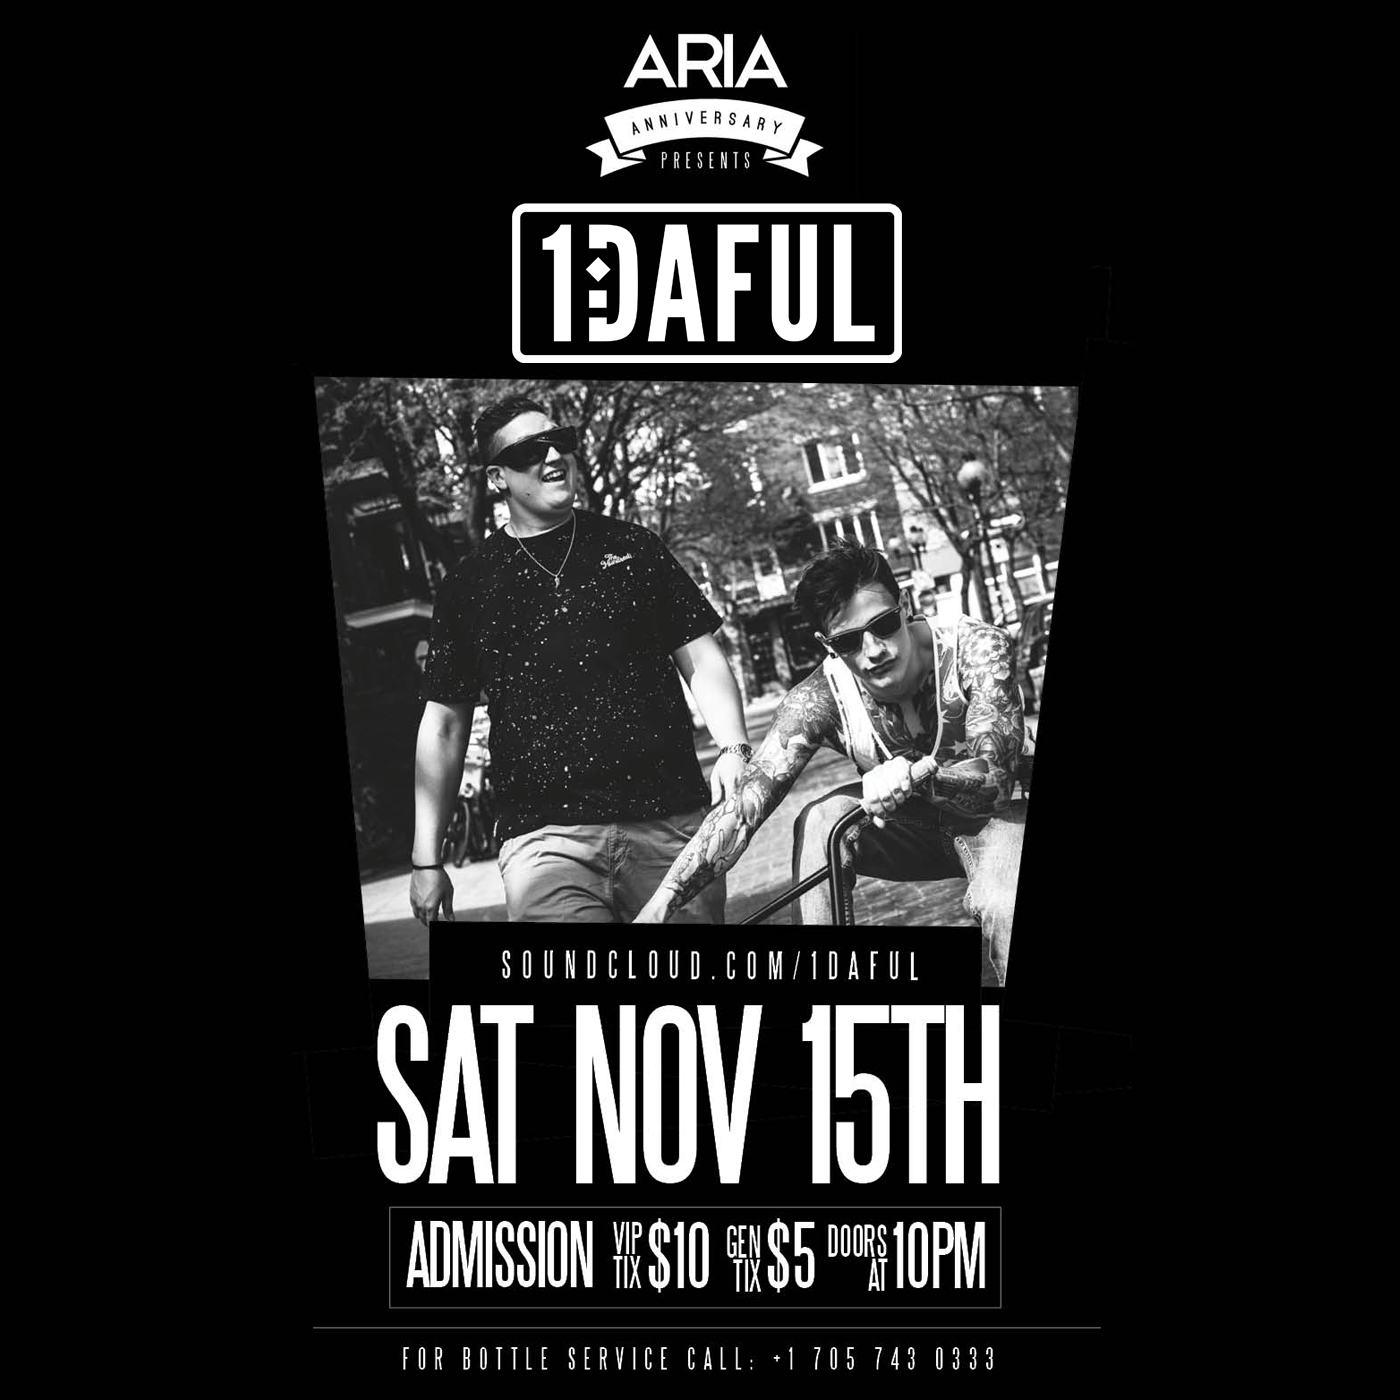 1DAFUL - Aria Nov 15